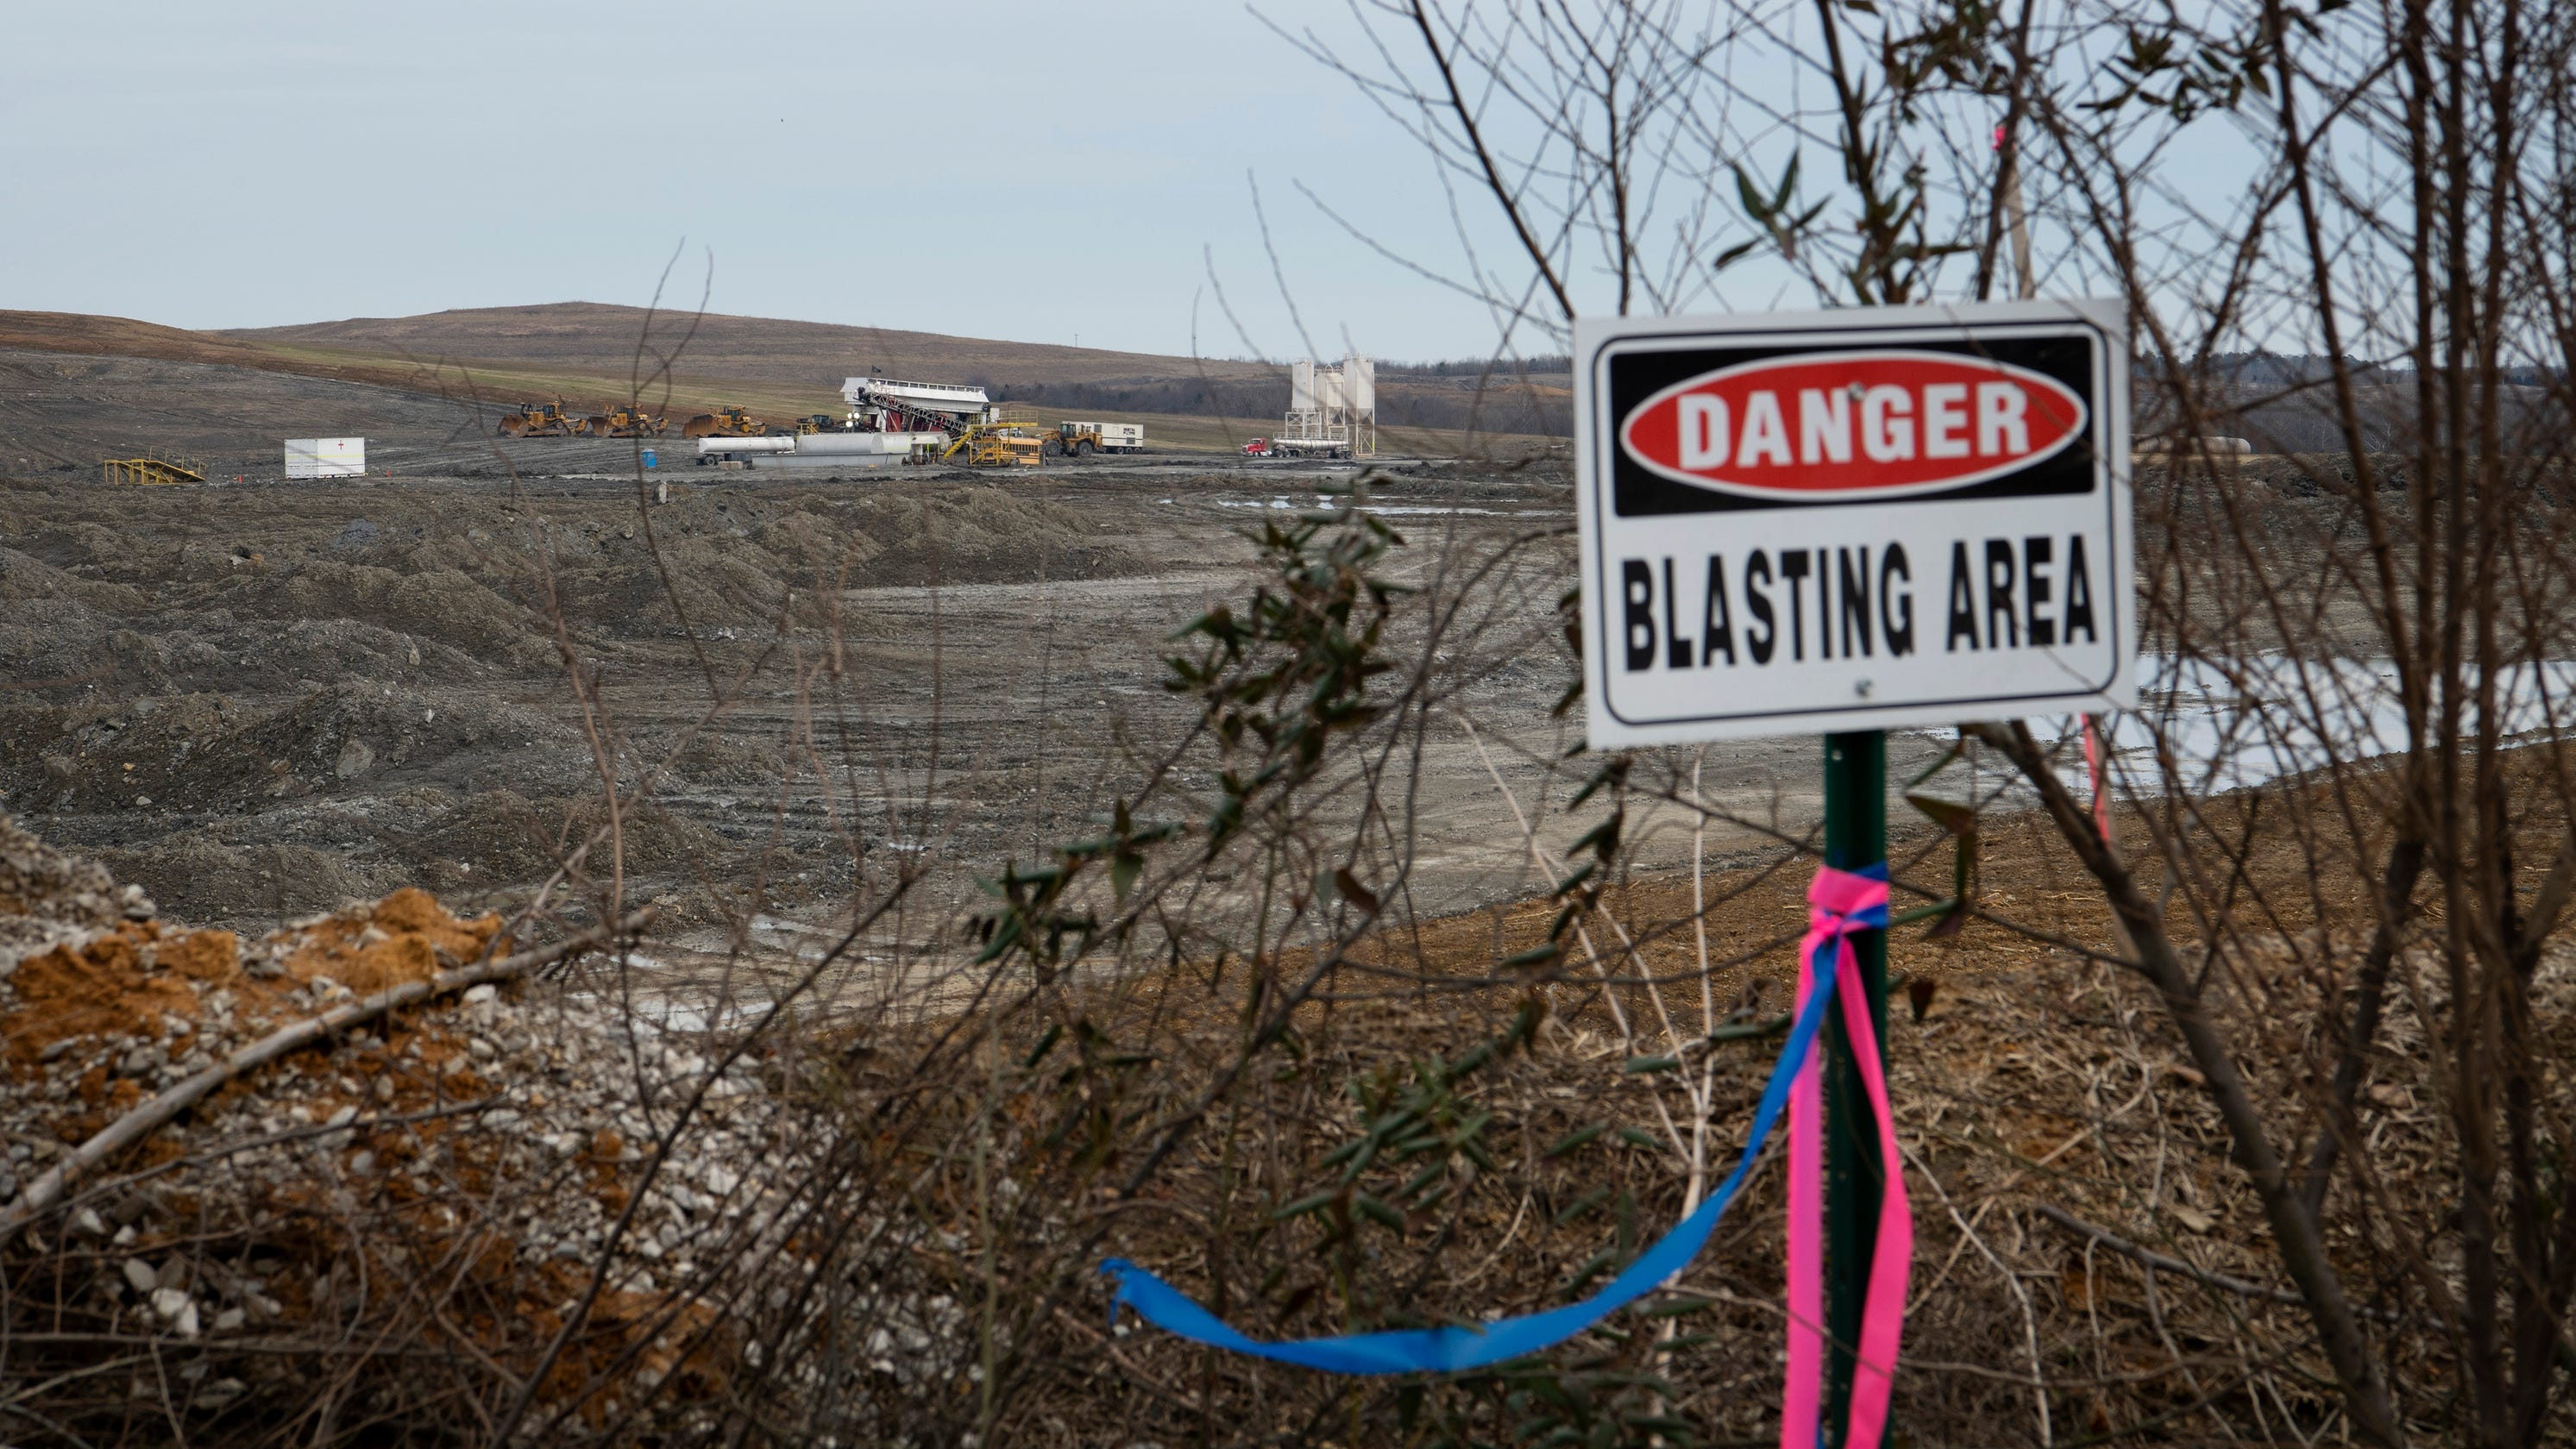 Liberty Mine in Warrick to close, about 80 jobs to be lost